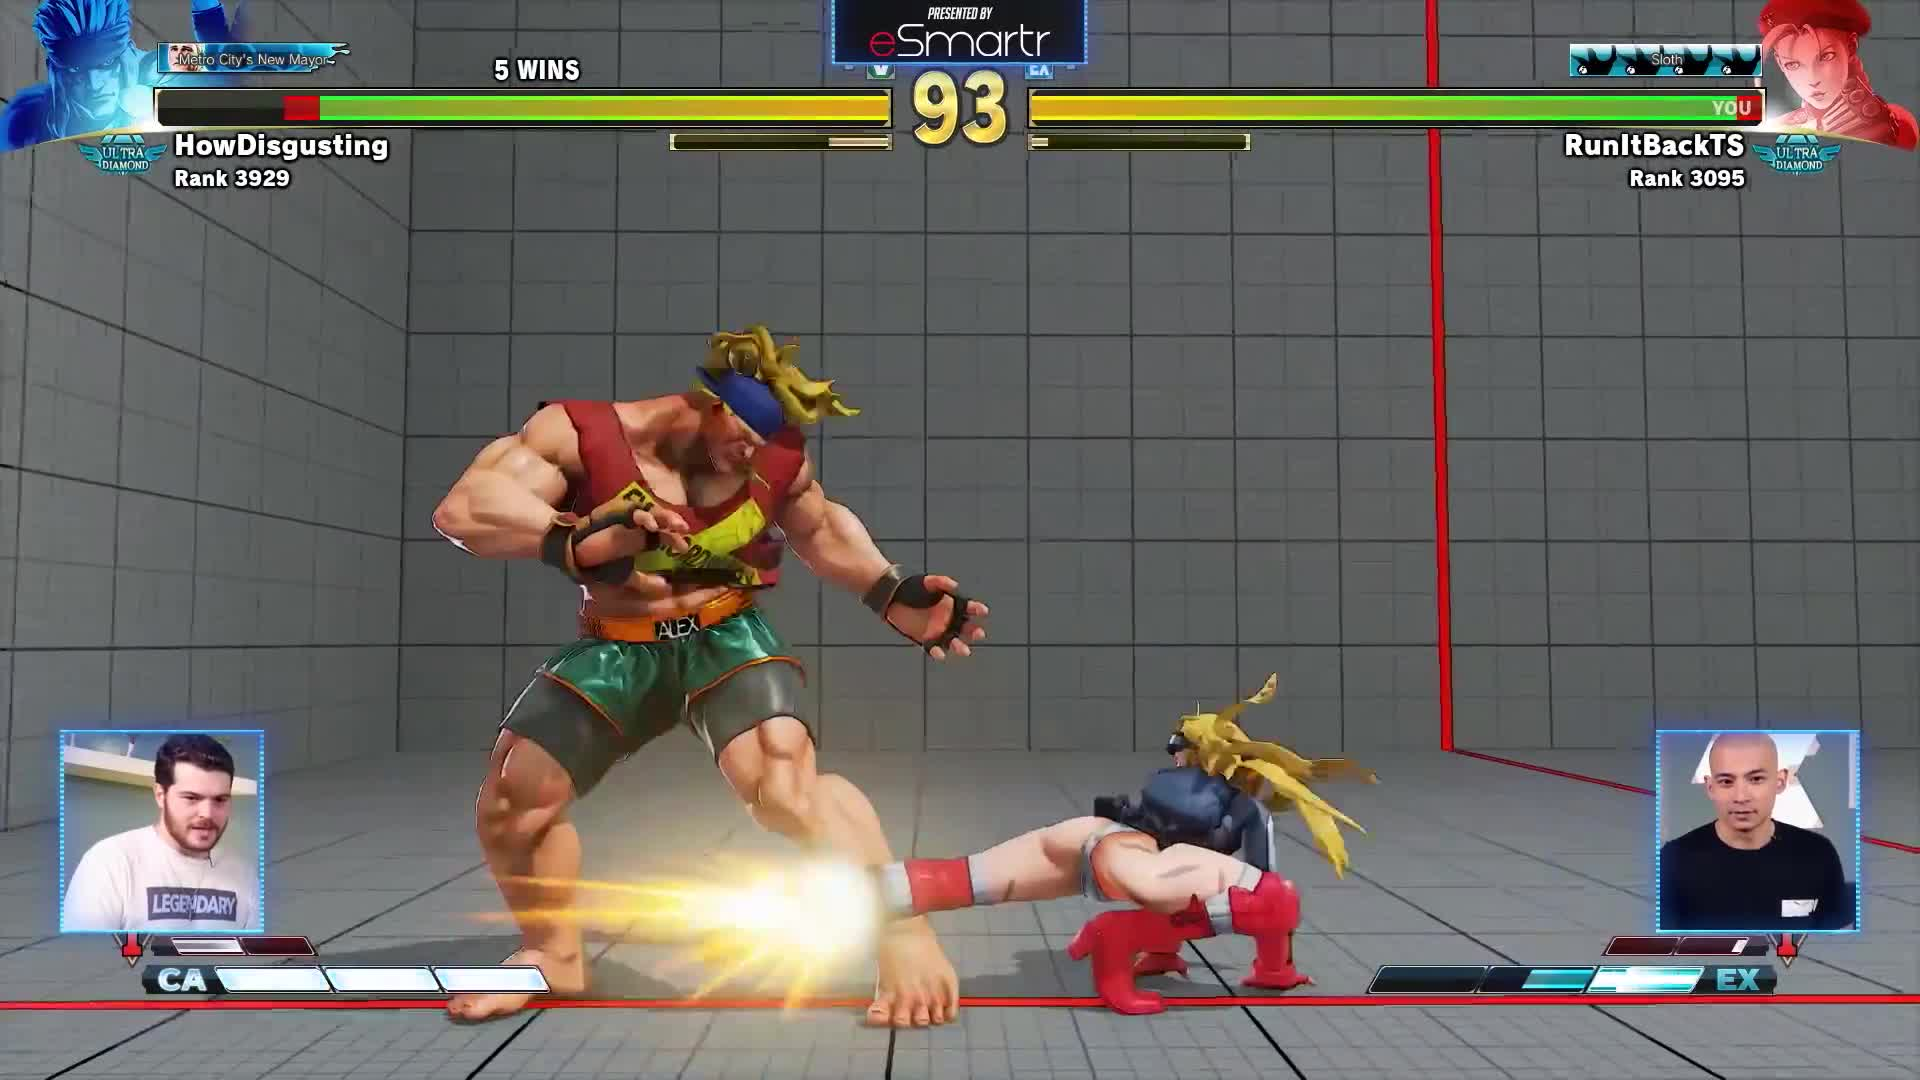 alex myers, competitive, esmartr, fgc, fight, fighting game, fighting game community, gaming, hot bars, run it back, street fighter, street fighter 5, tempo storm, twitch, viciousfgc, video games, Run it Back with Alex Myers & Vicious! Episode 1 - Hot Bars | Brought to you by eSmartr! GIFs